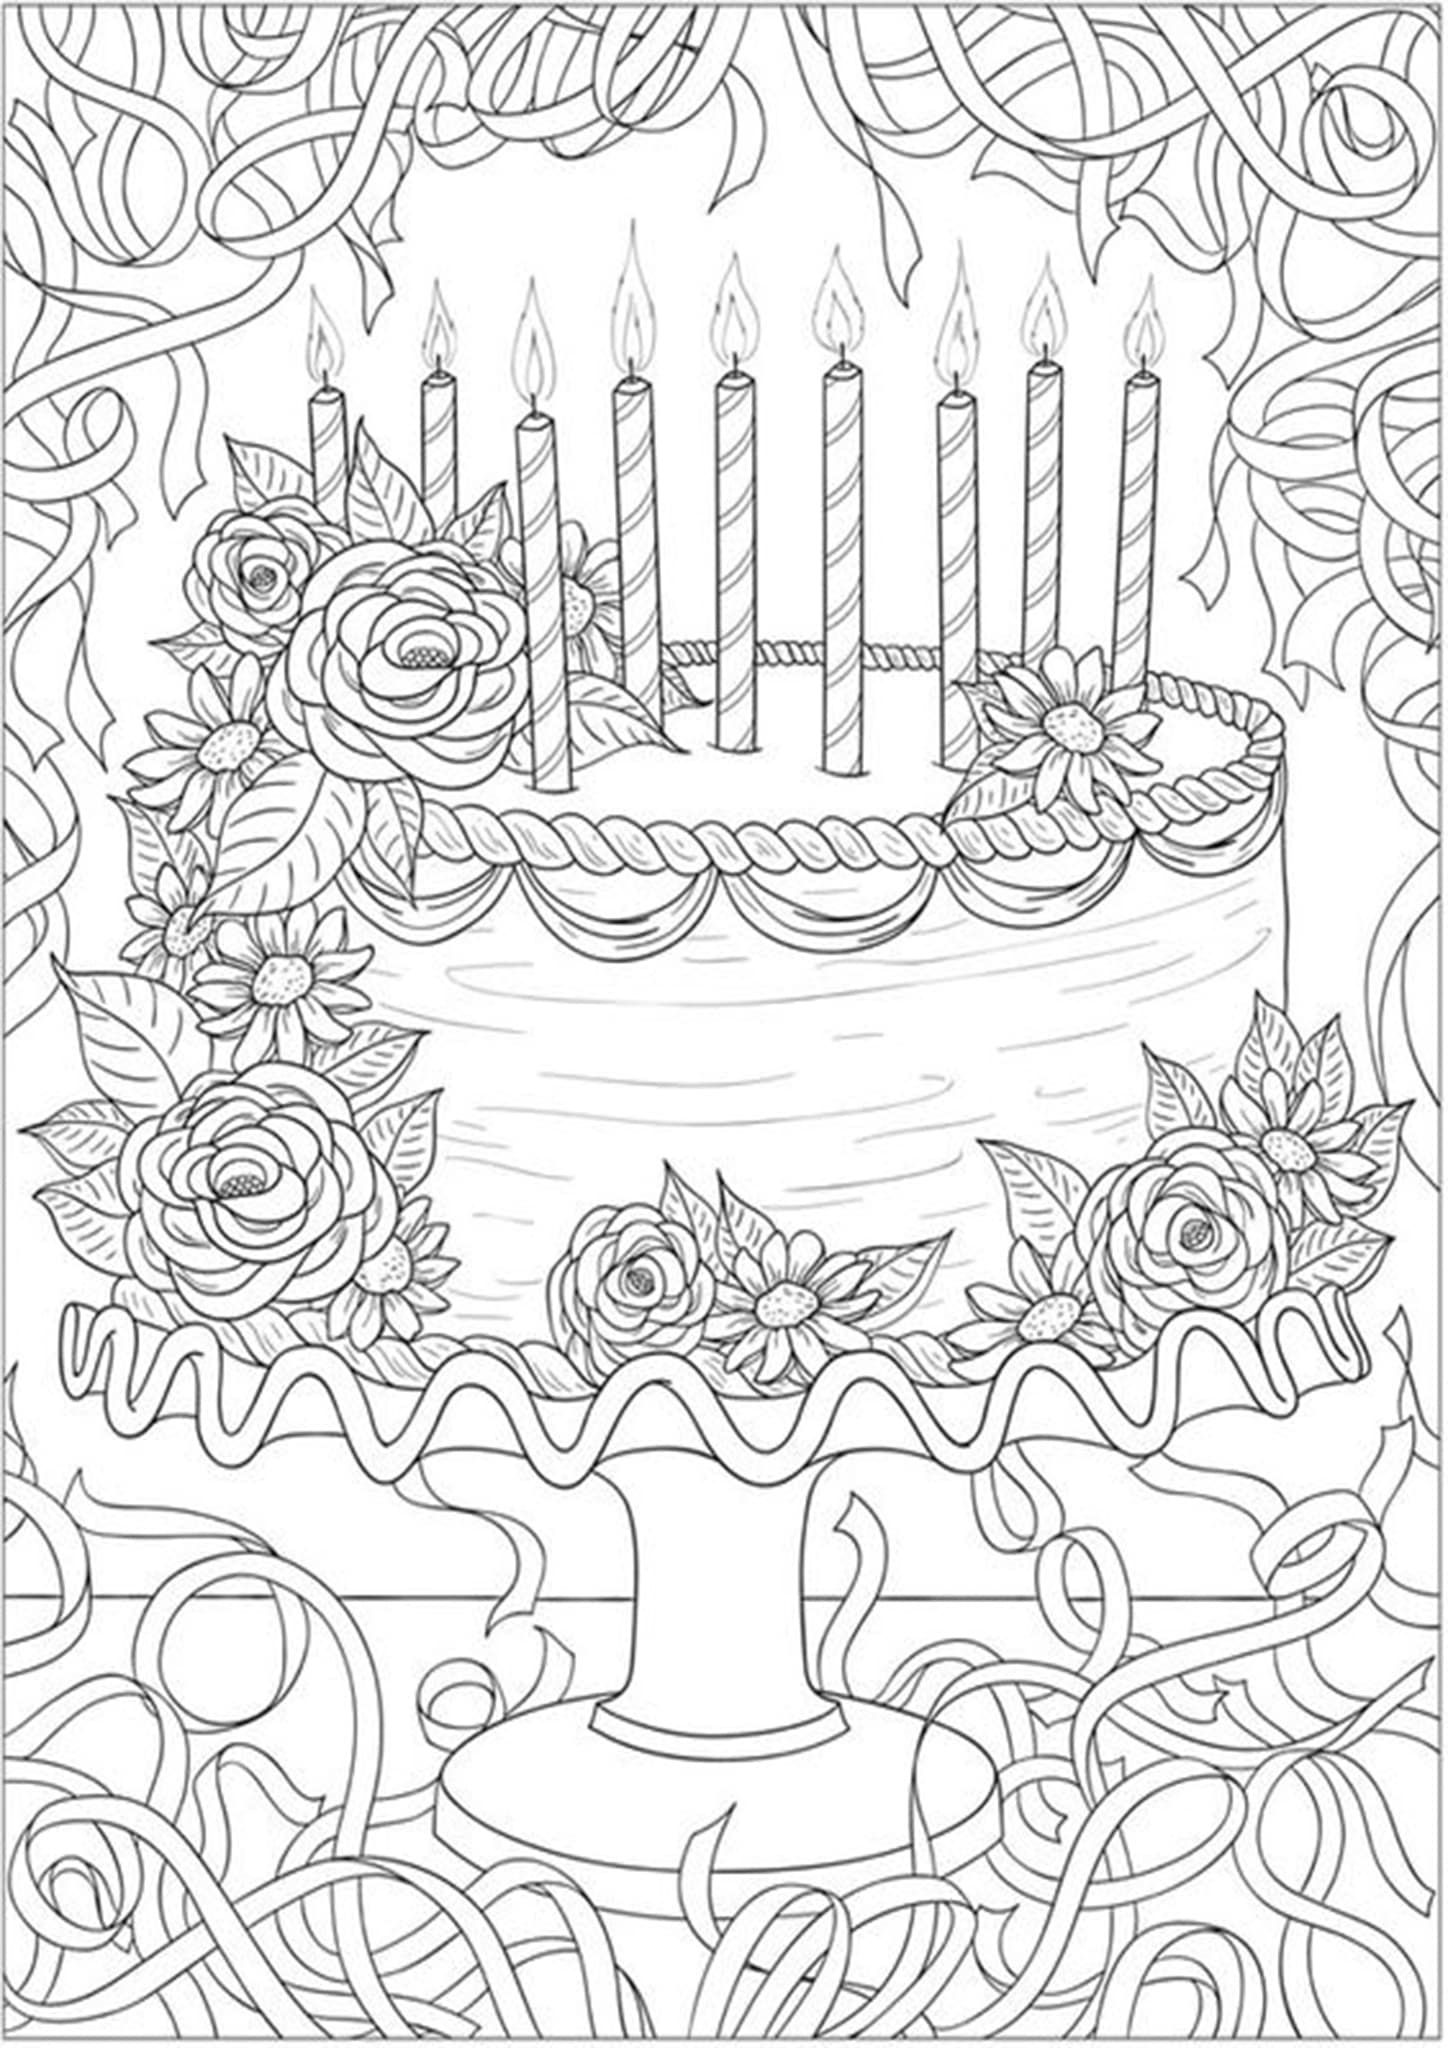 Free Easy To Print Cake Coloring Pages Birthday Coloring Pages Happy Birthday Coloring Pages Coloring Pages